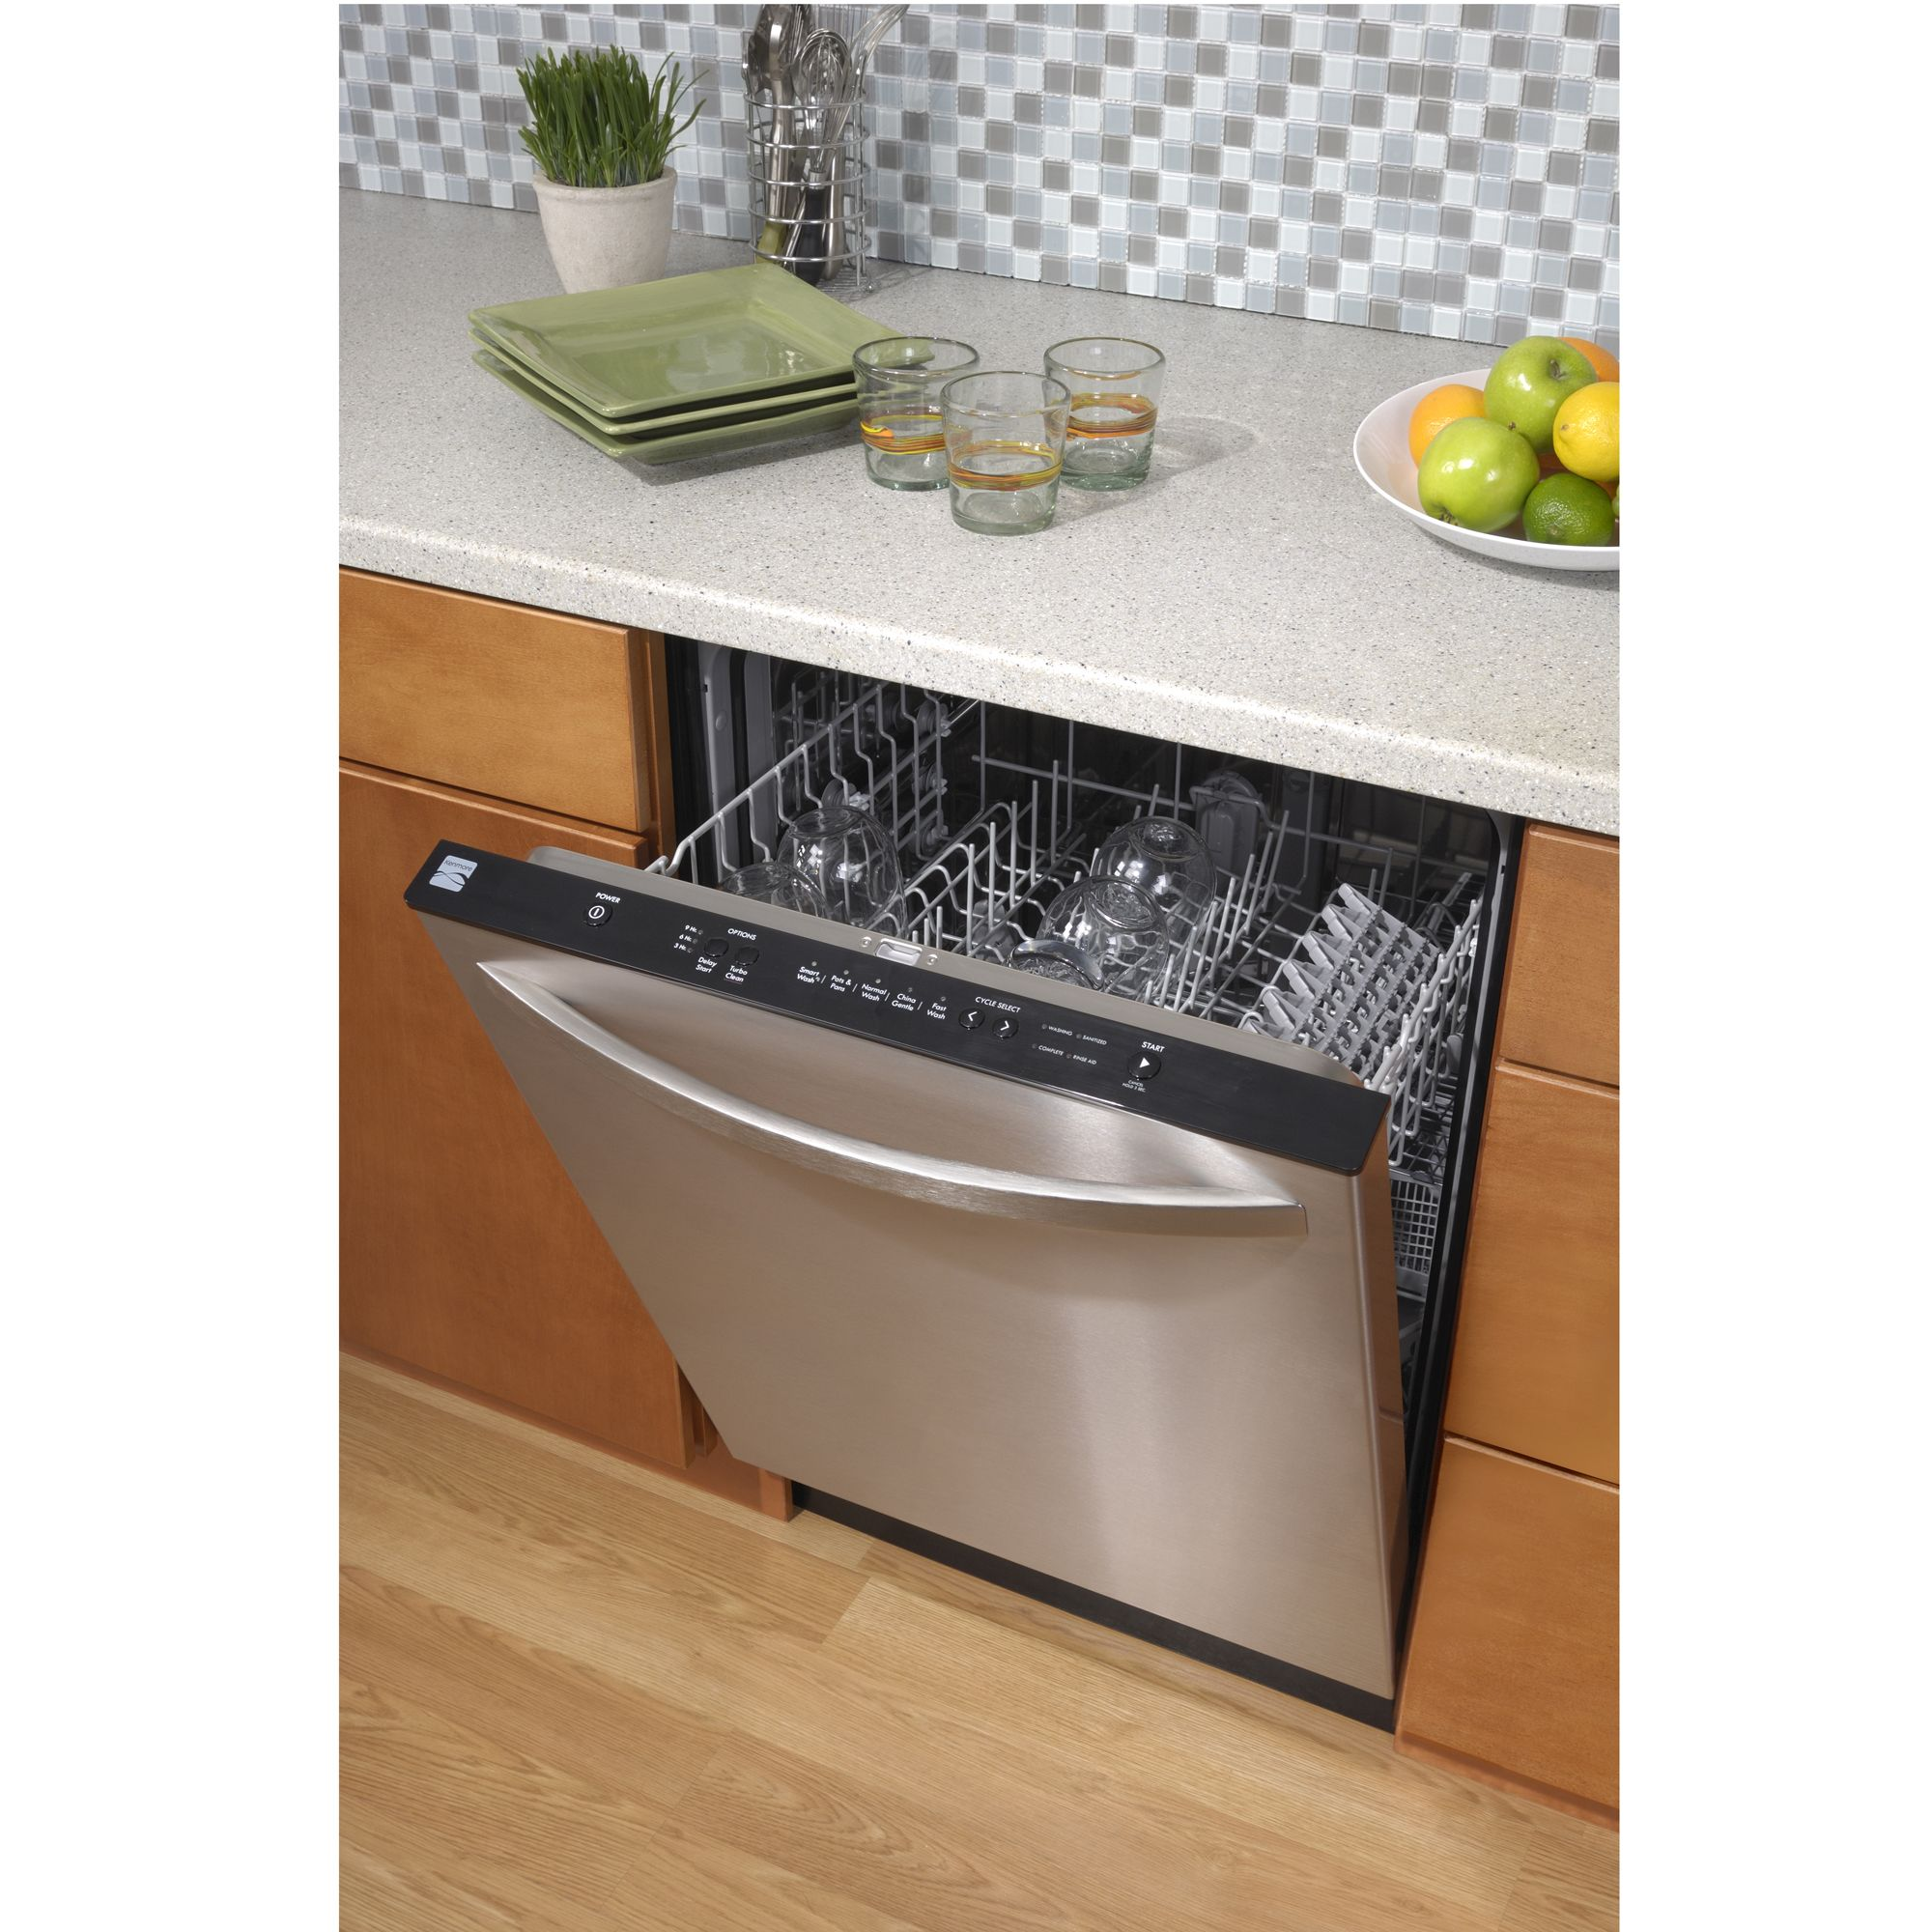 Kenmore 24 in. Built-In Dishwasher - Stainless Steel